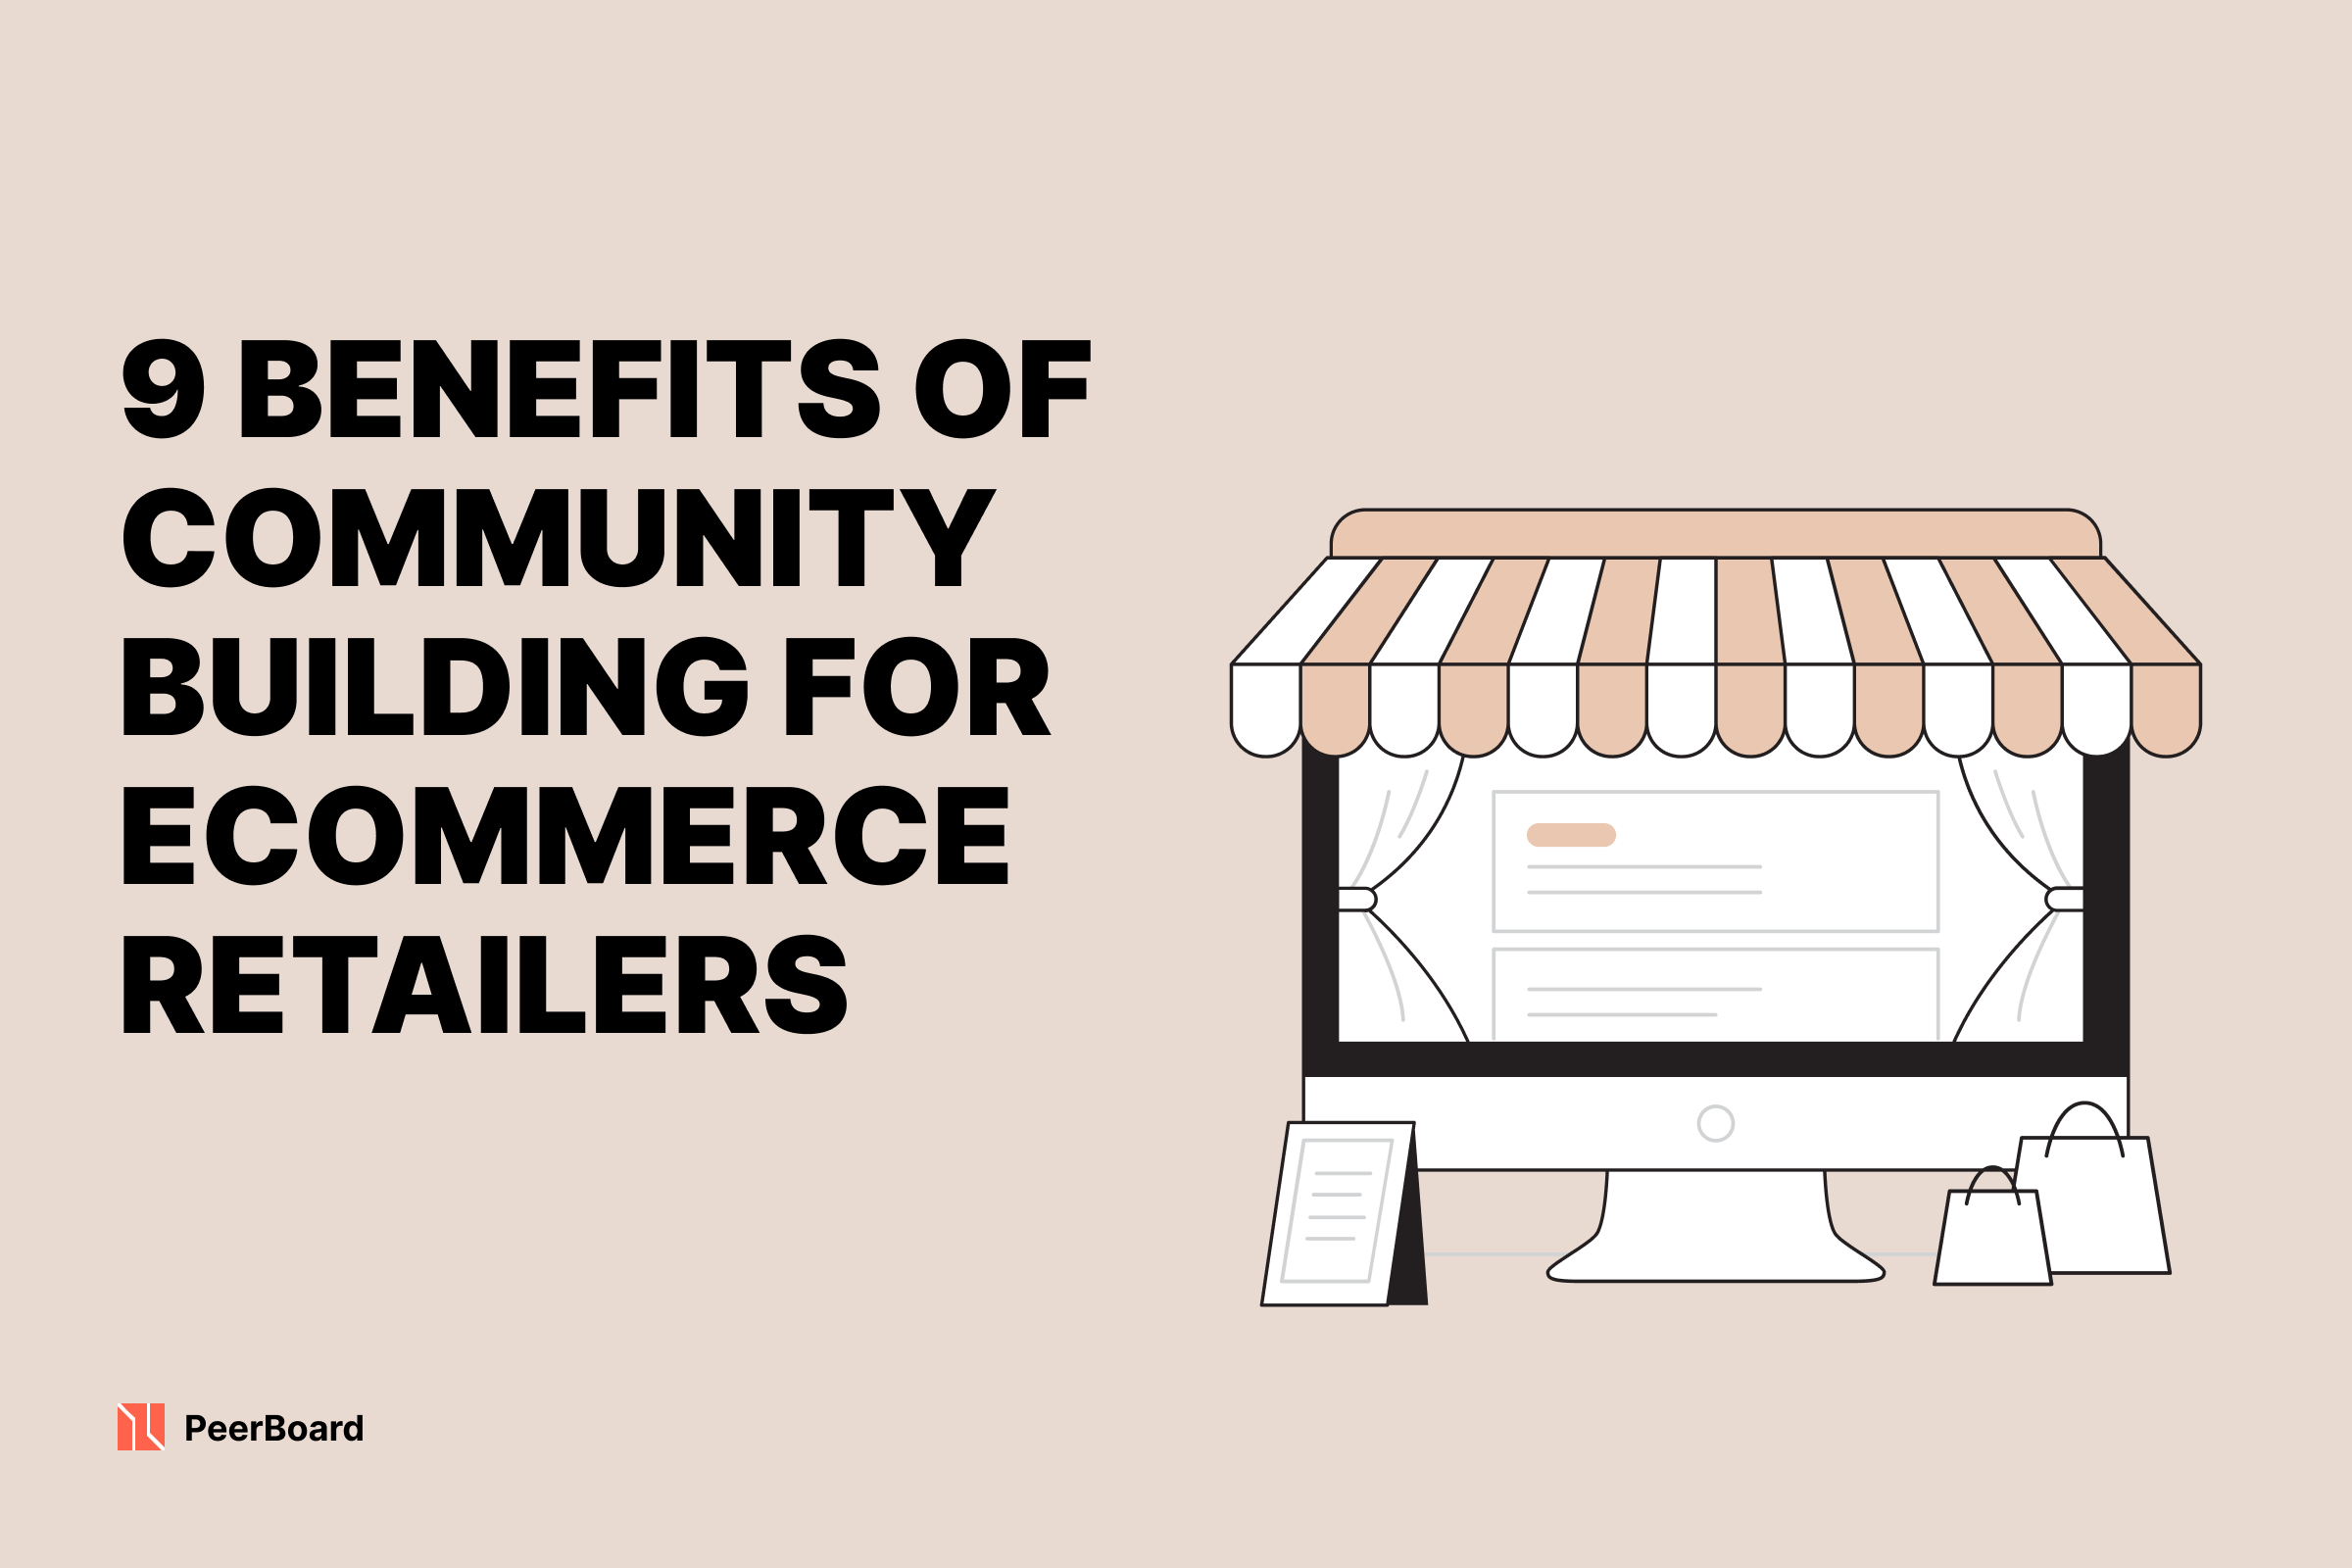 9 Benefits of Community Building for Ecommerce Retailers